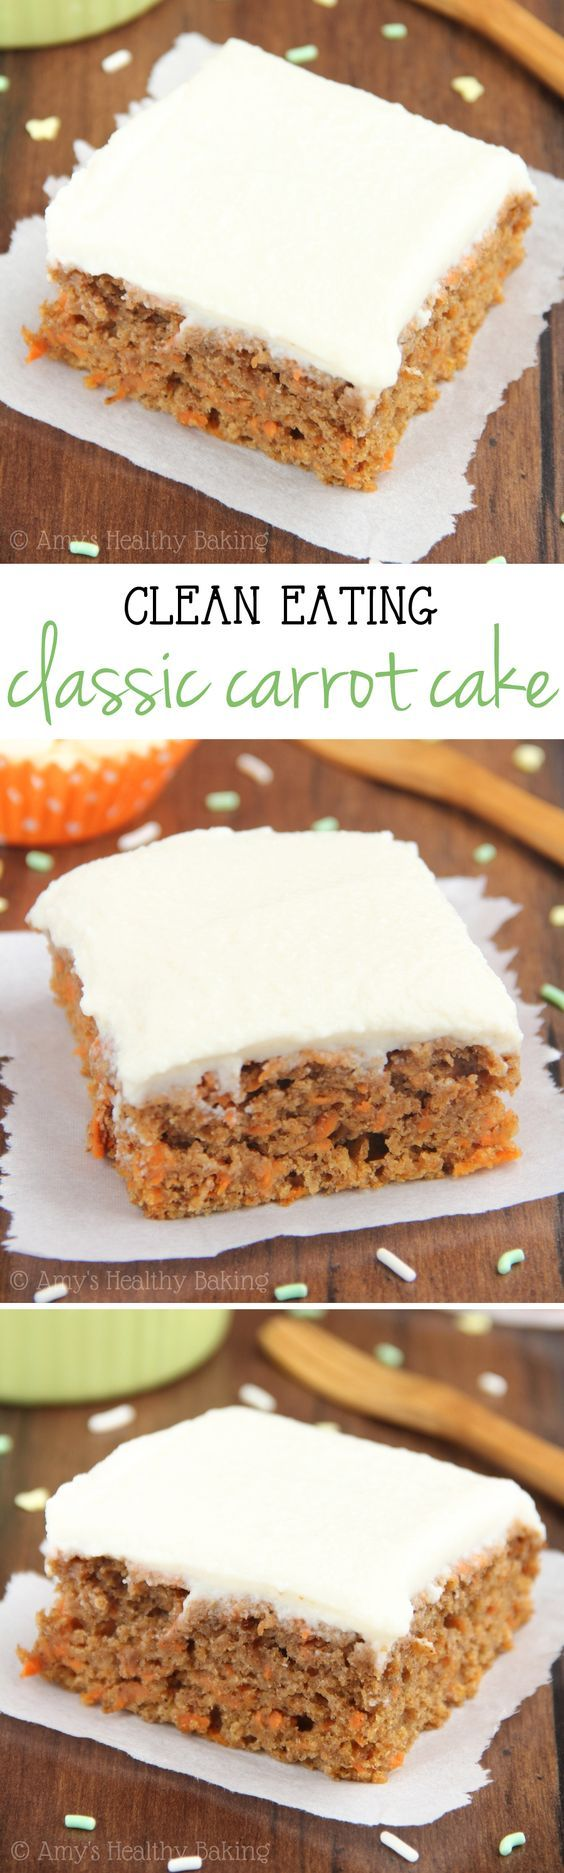 Clean Eating Carrot Cake Recipe plus 24 more Clean Eating Recipes